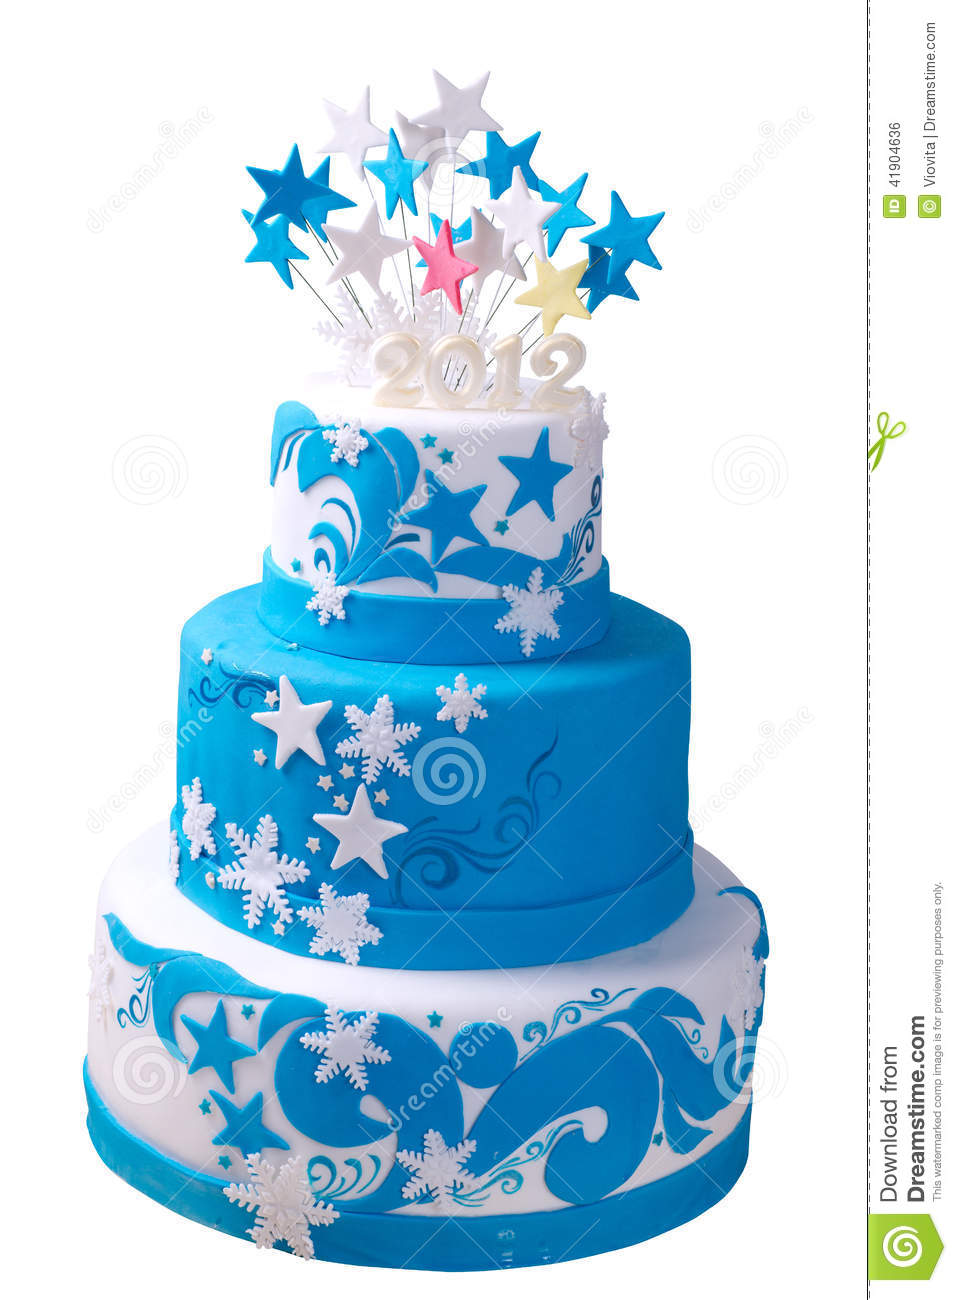 Ribbon Frosting On Cake